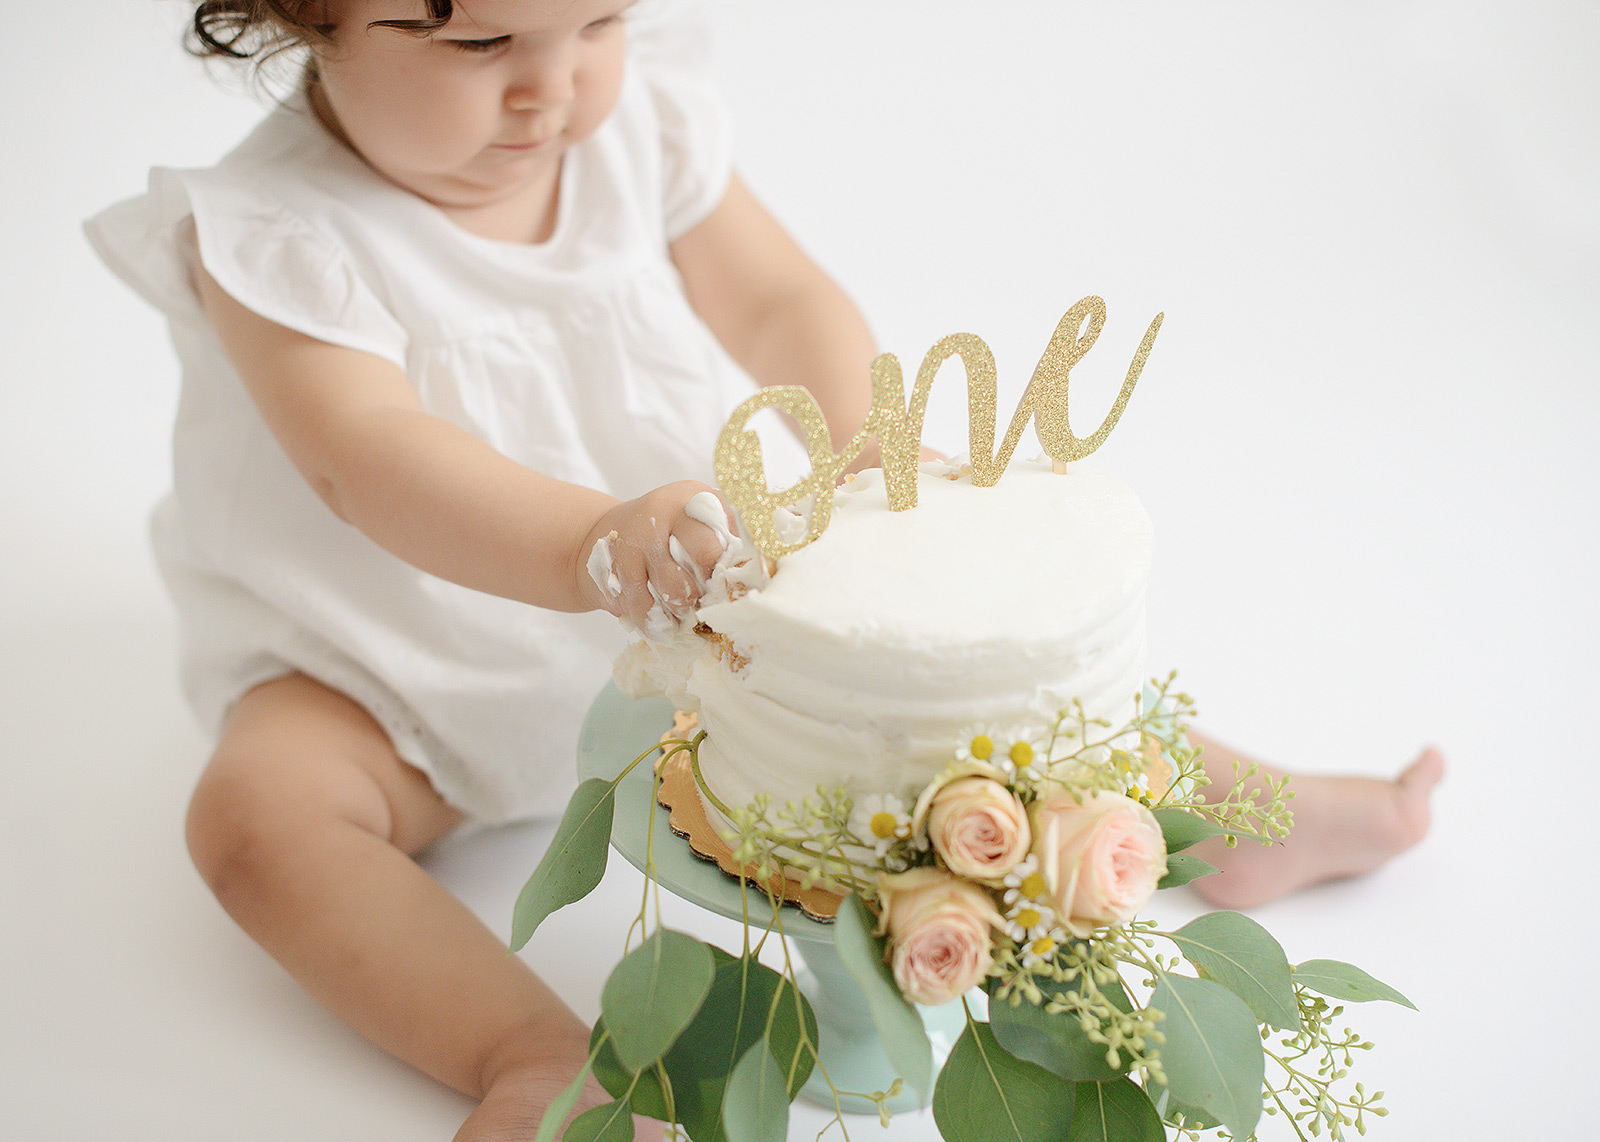 Baby Girl One Year Cake Smash with Flowers